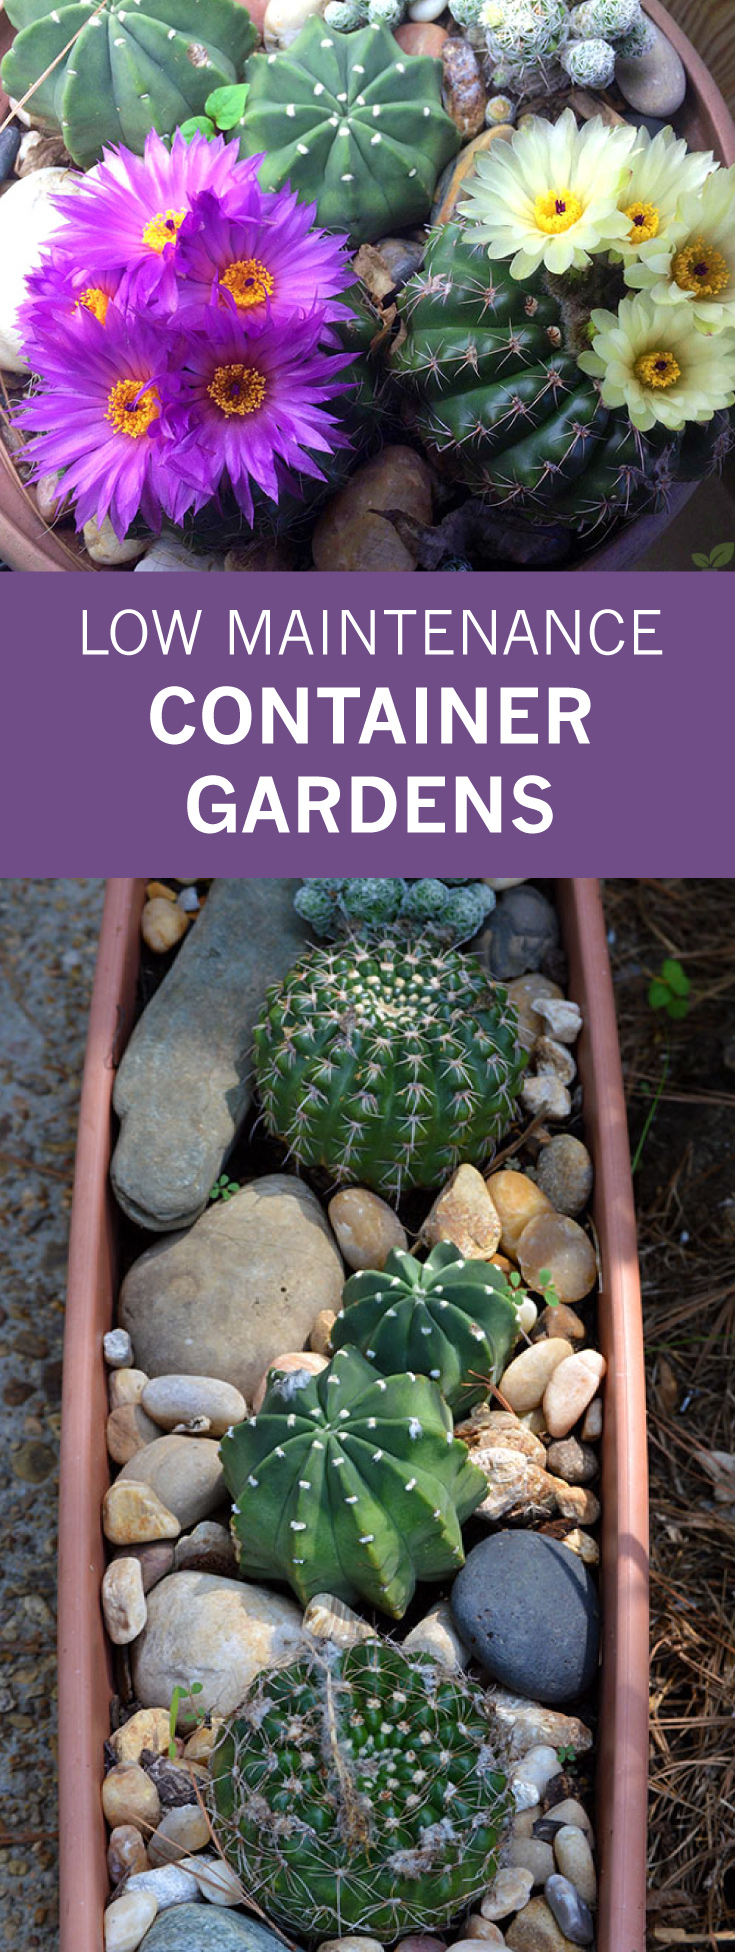 Low Maintenance Container Gardens